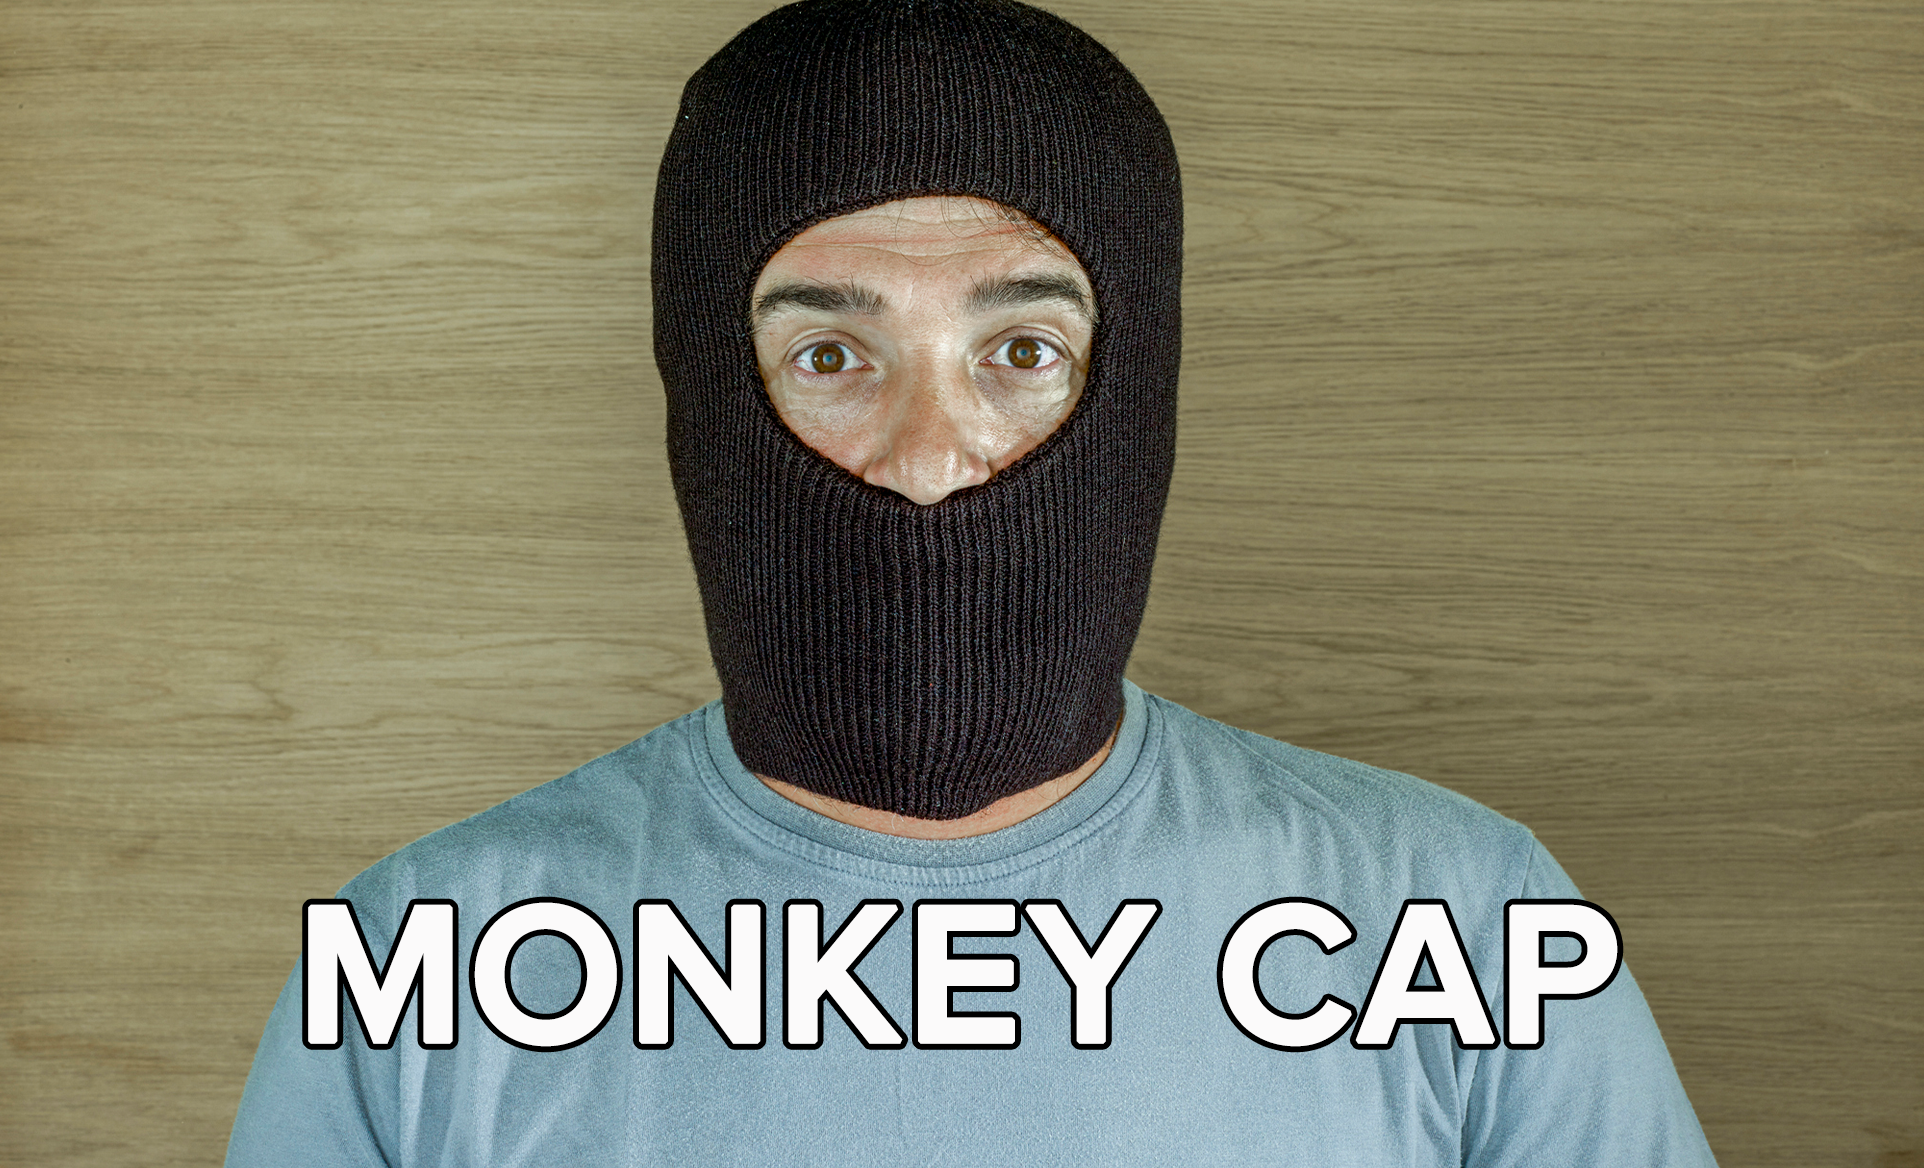 A person wearing a balaclava stares at the camera